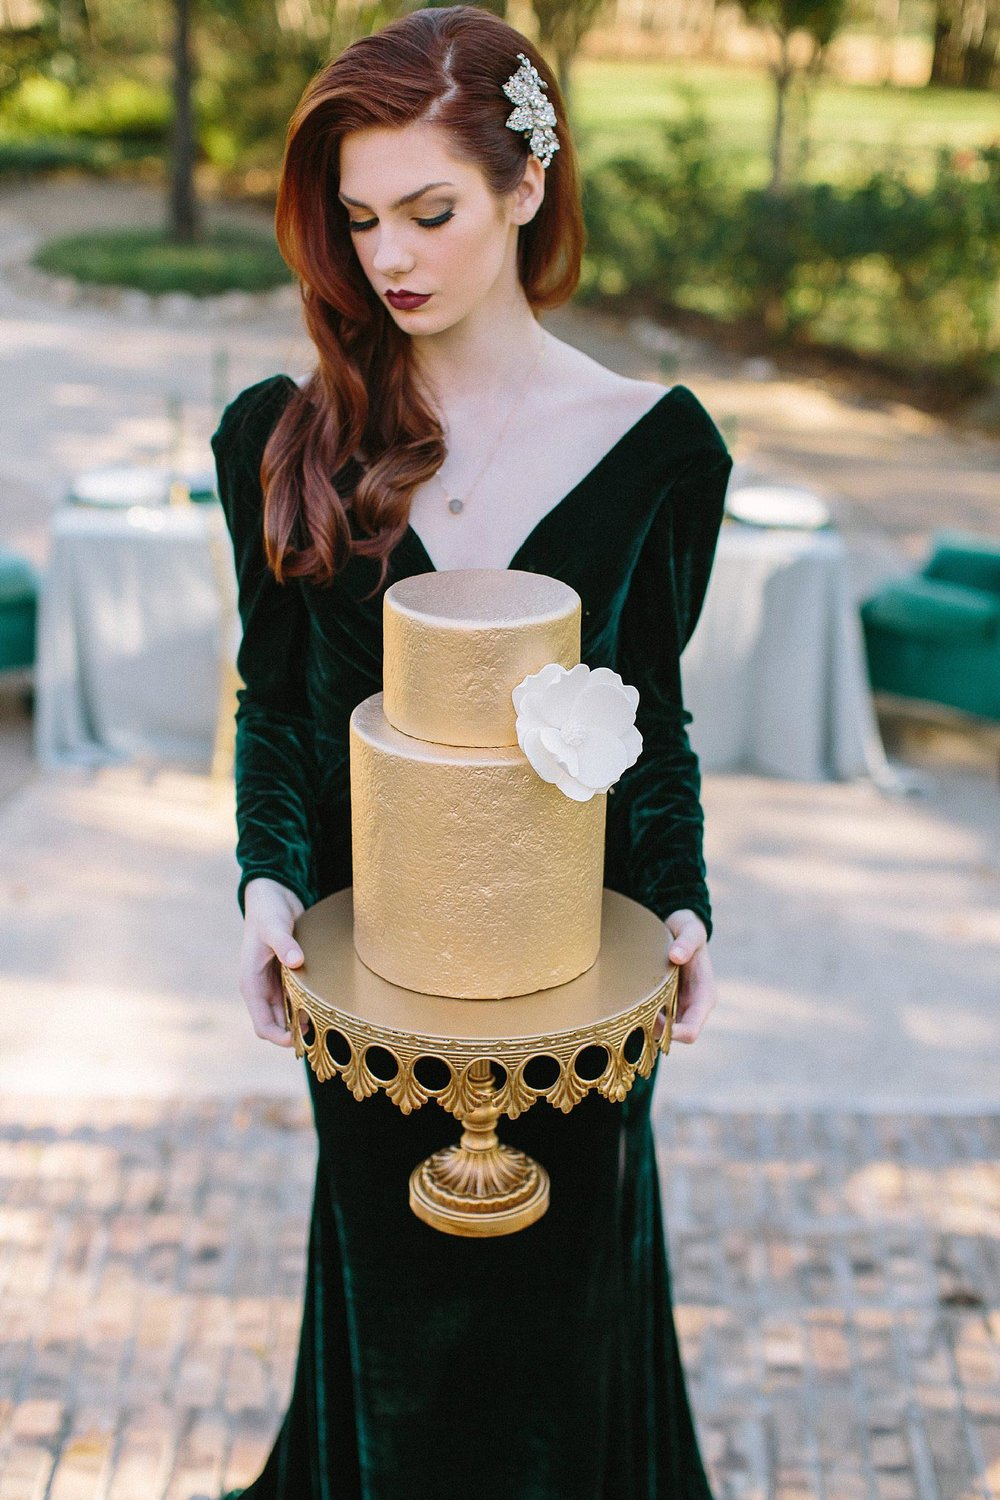 aristide mansfield wedding bride hold gold textured wedding cake